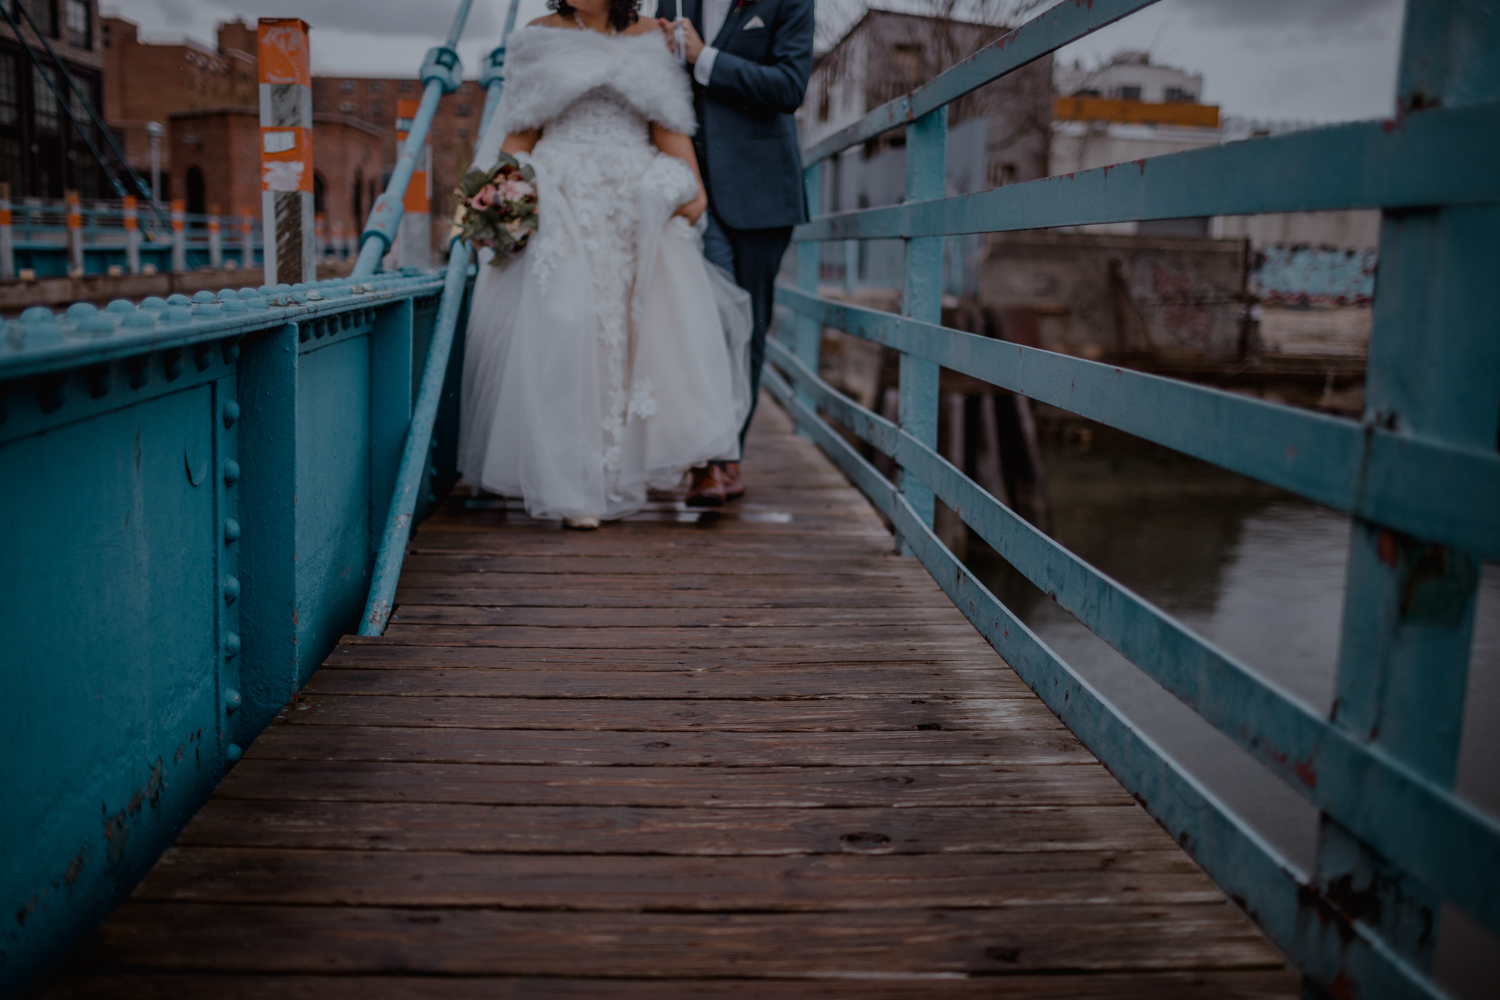 Green_building_wedding_photographer_brooklyn_newyork_ny-49.jpg